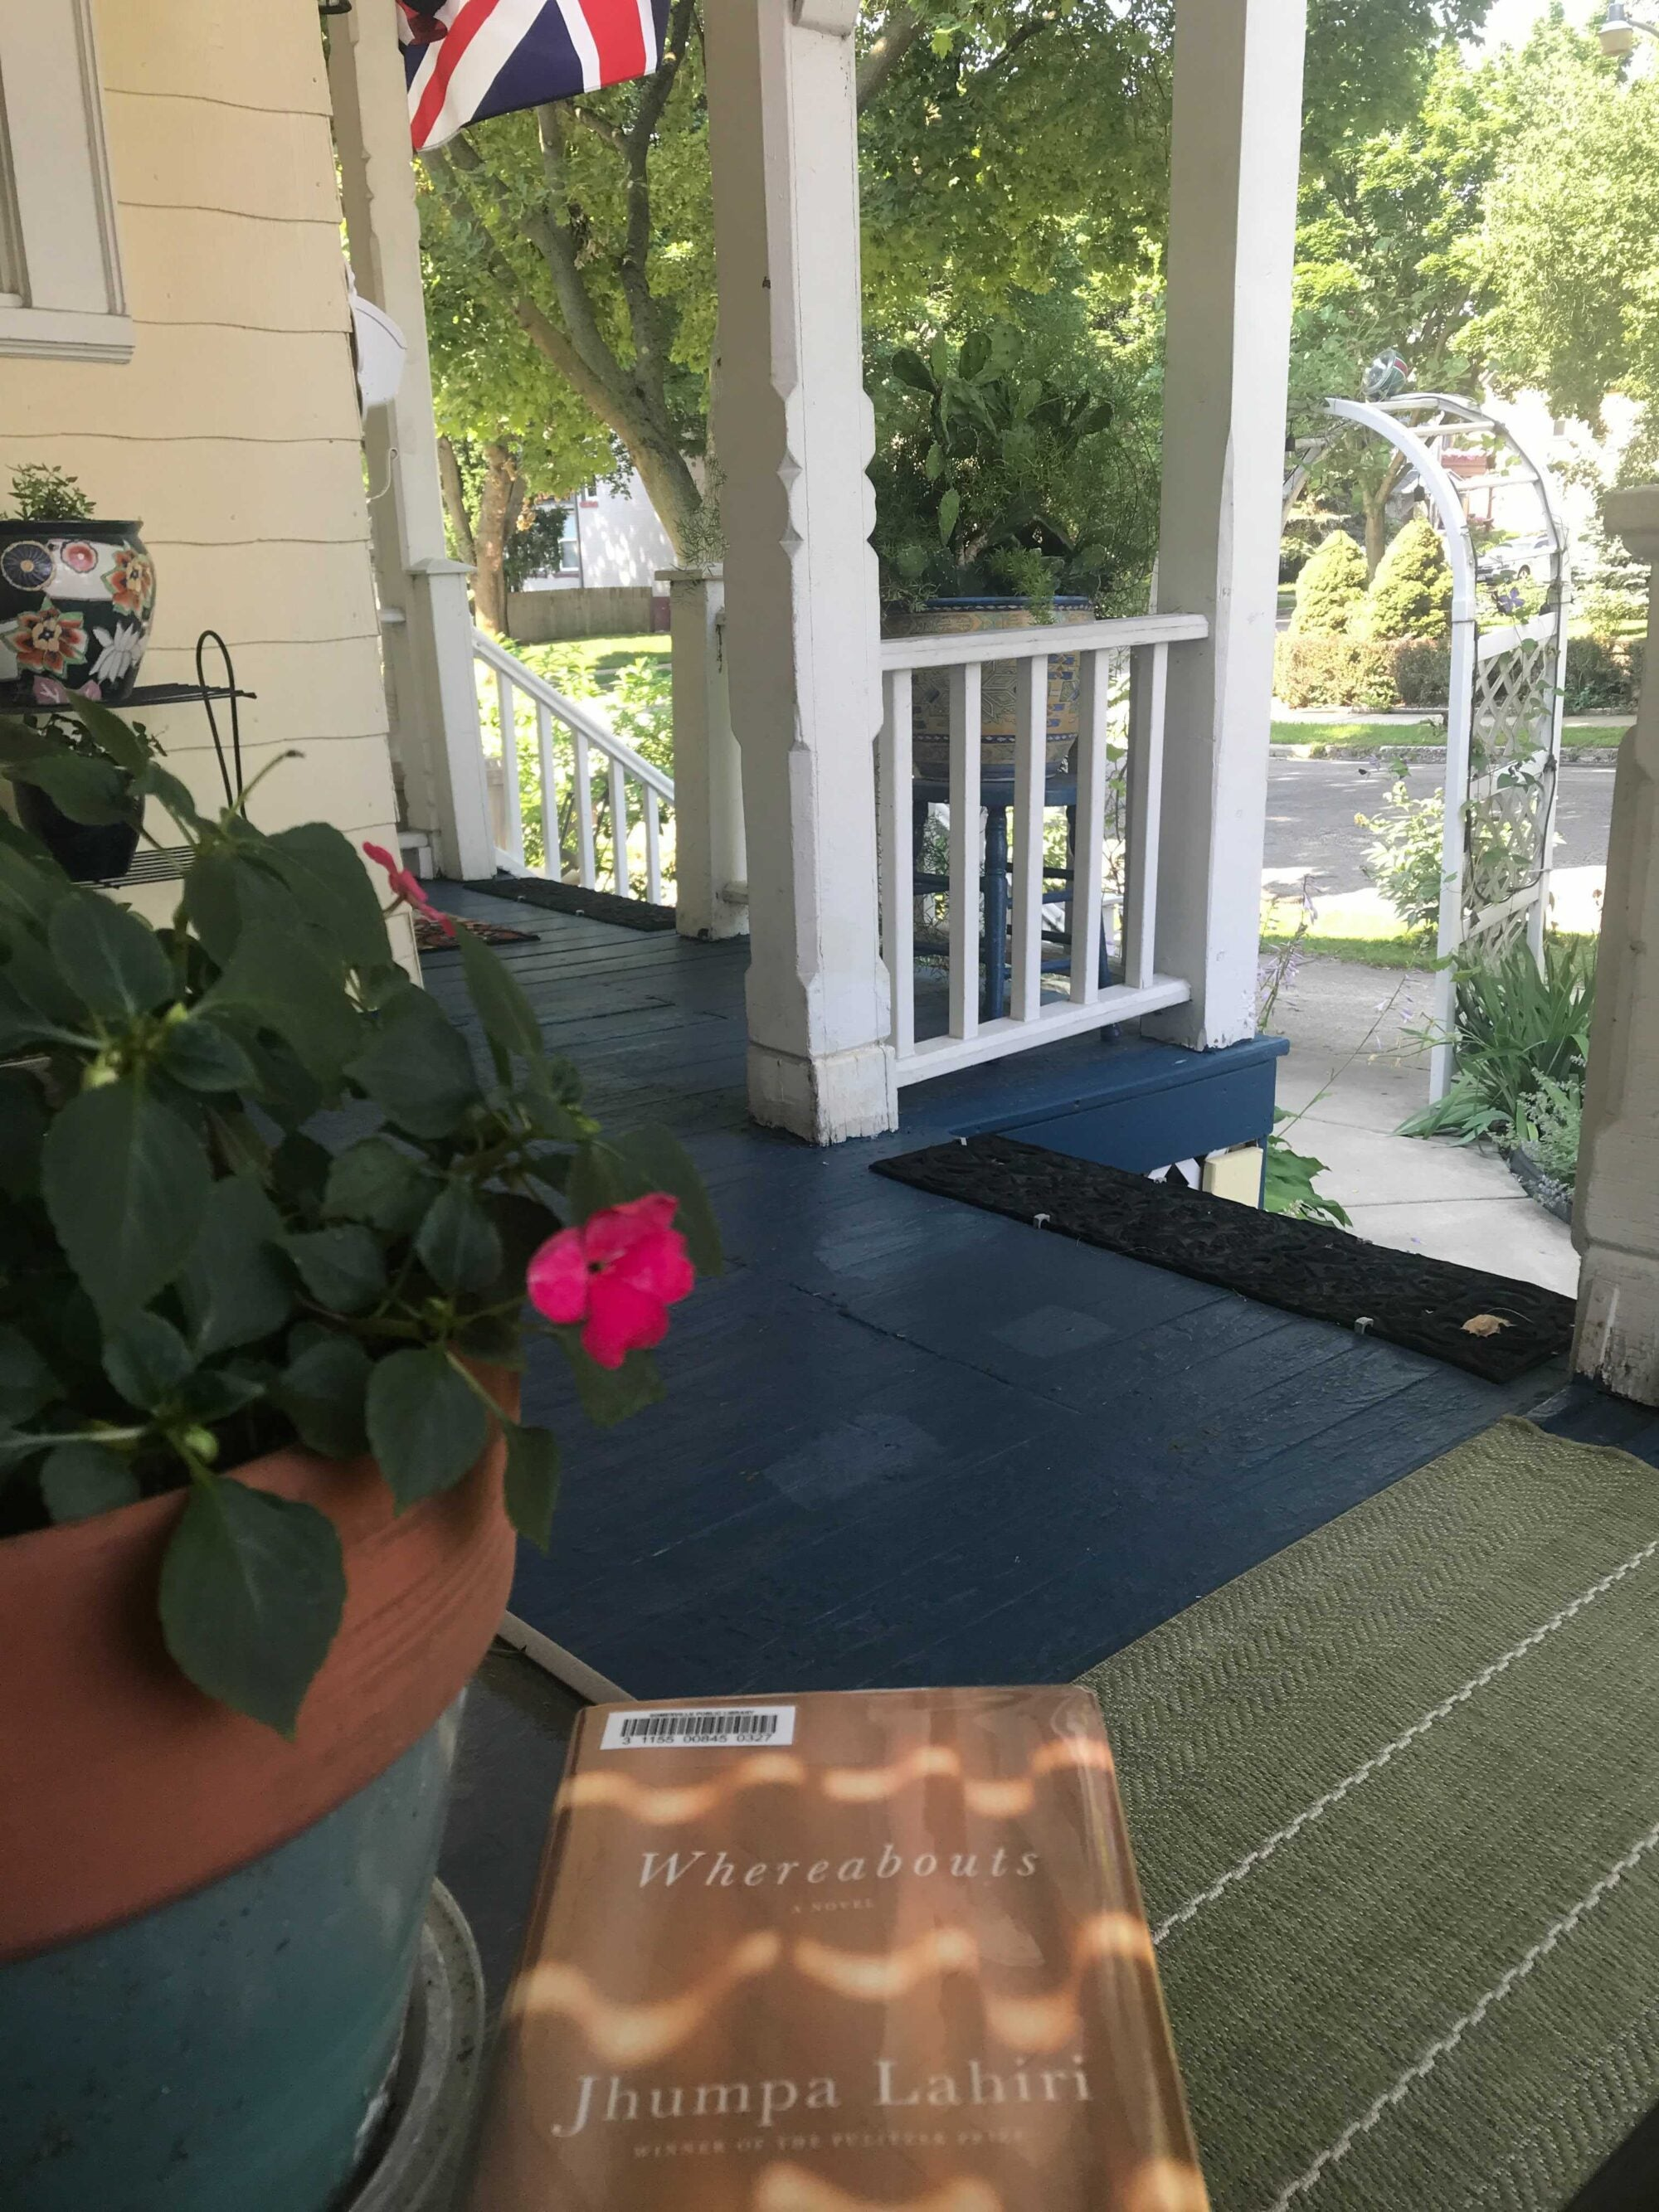 A book rests next to a potted plant on a front porch